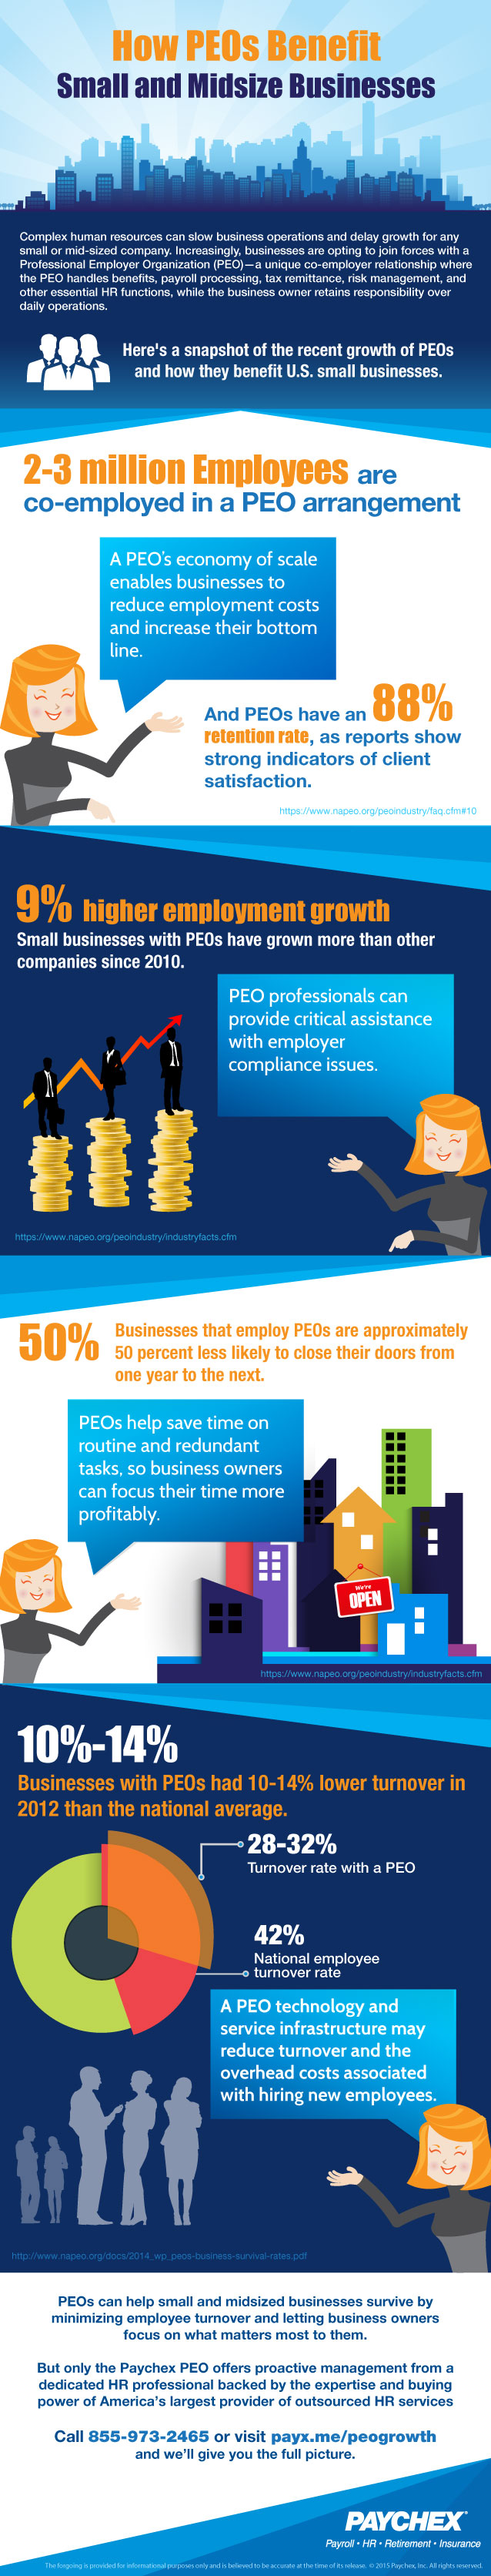 infographic-why businesses are drawn to peos